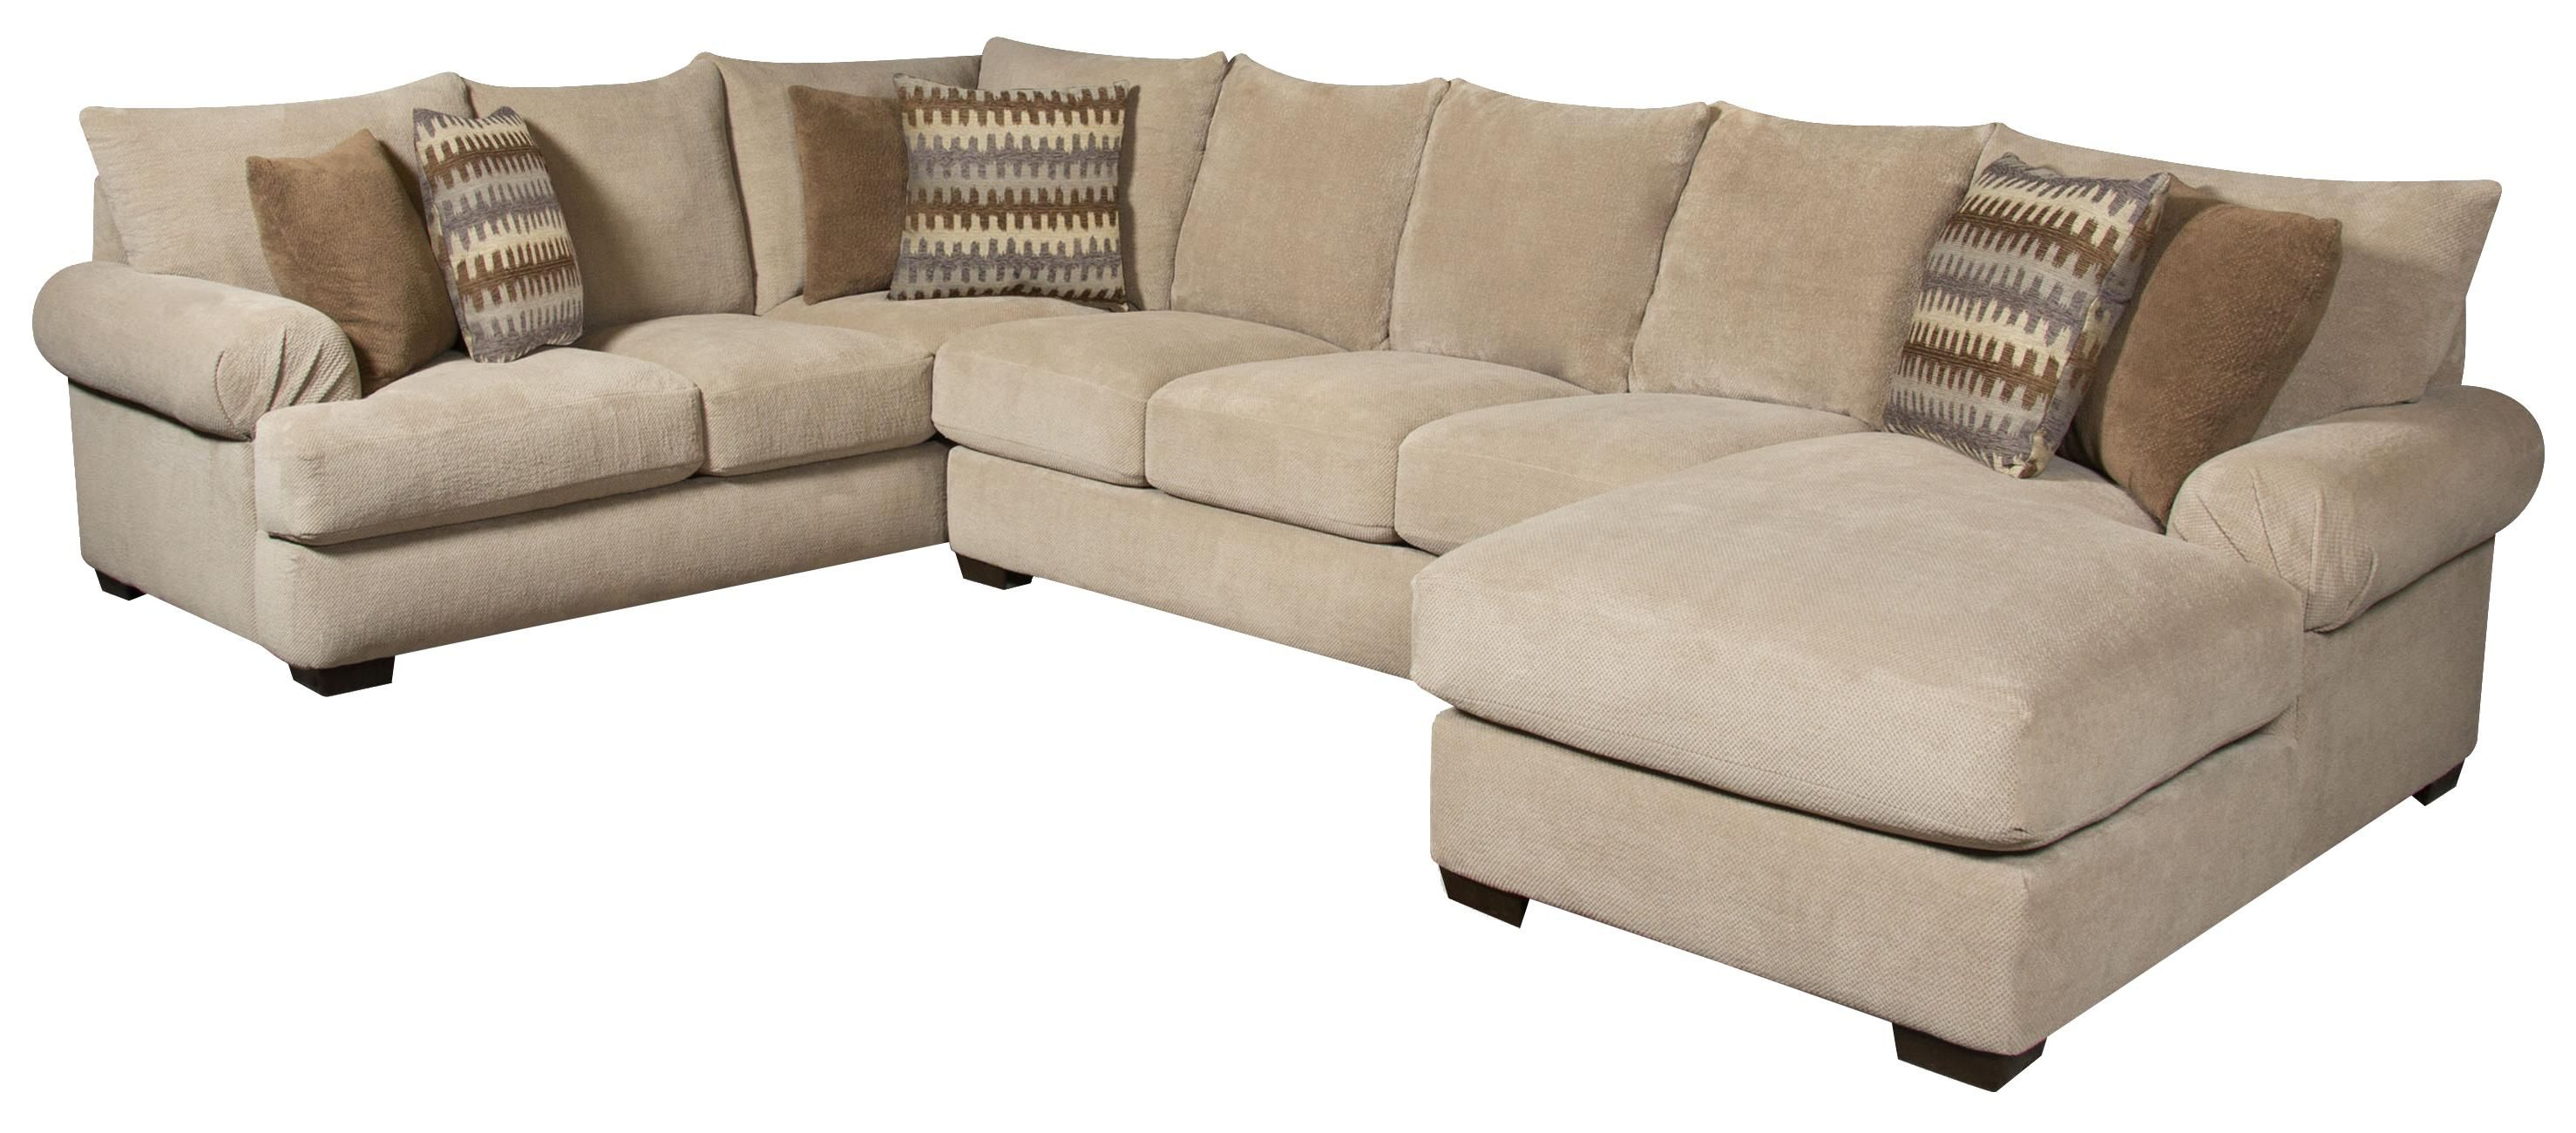 Best 61A0 Sectional Sofa With Right Side Chaise By Corinthian 400 x 300